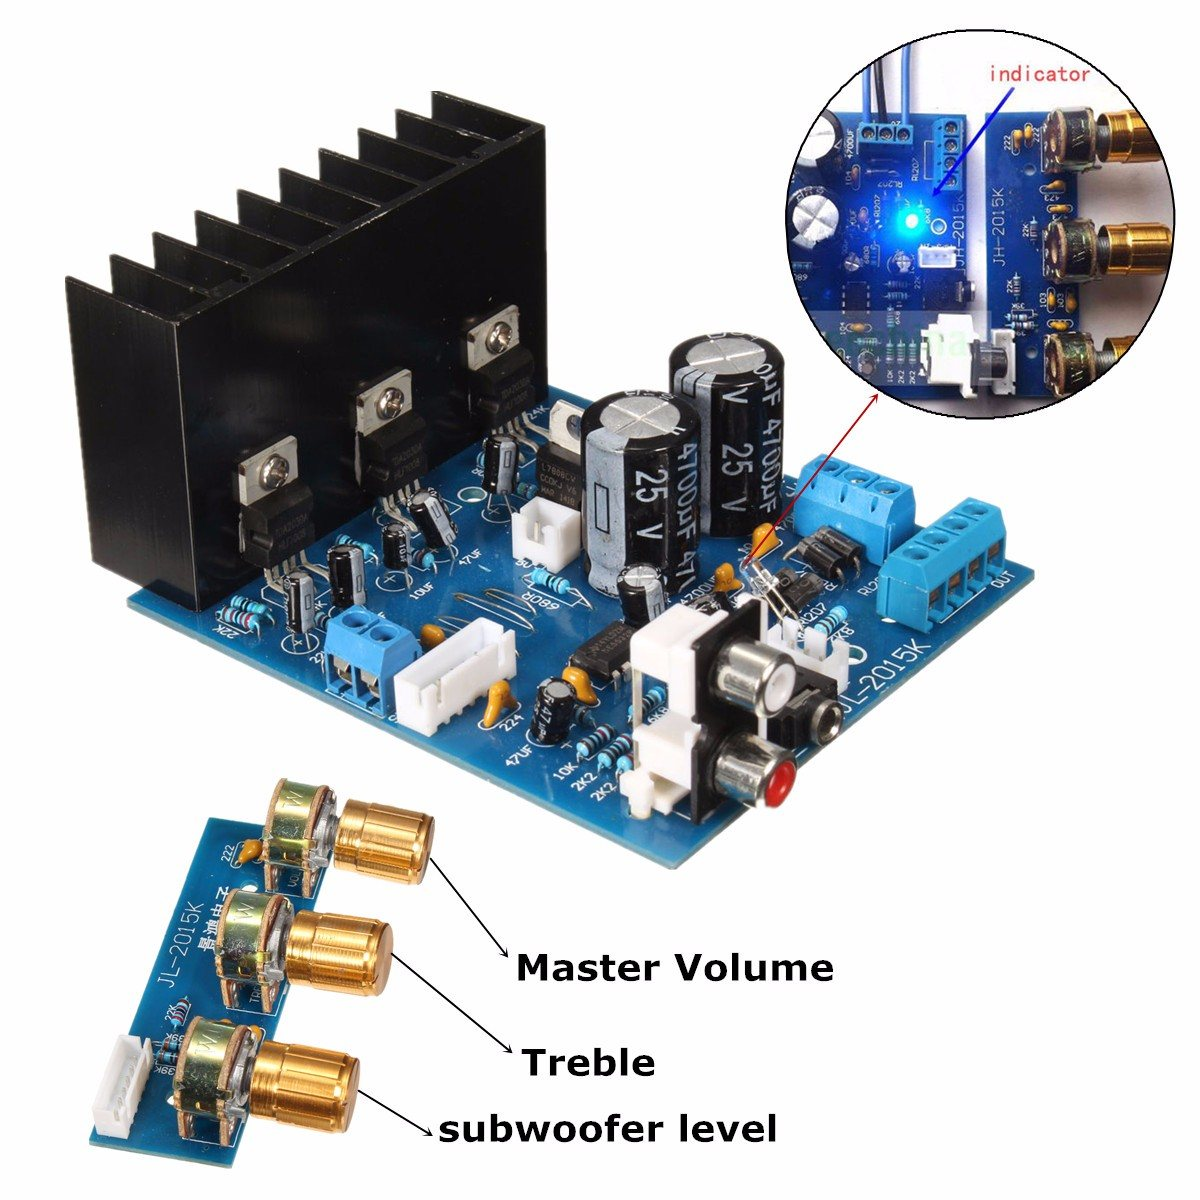 1pcs Tda2030a 21 Subwoofer Amplifier Board Ac 12v 3 Channel Tda2030 Bridge 35 Watt Power Circuit And Explanation Electronics Module 18w 18 W With 6pin Cable In From Consumer On